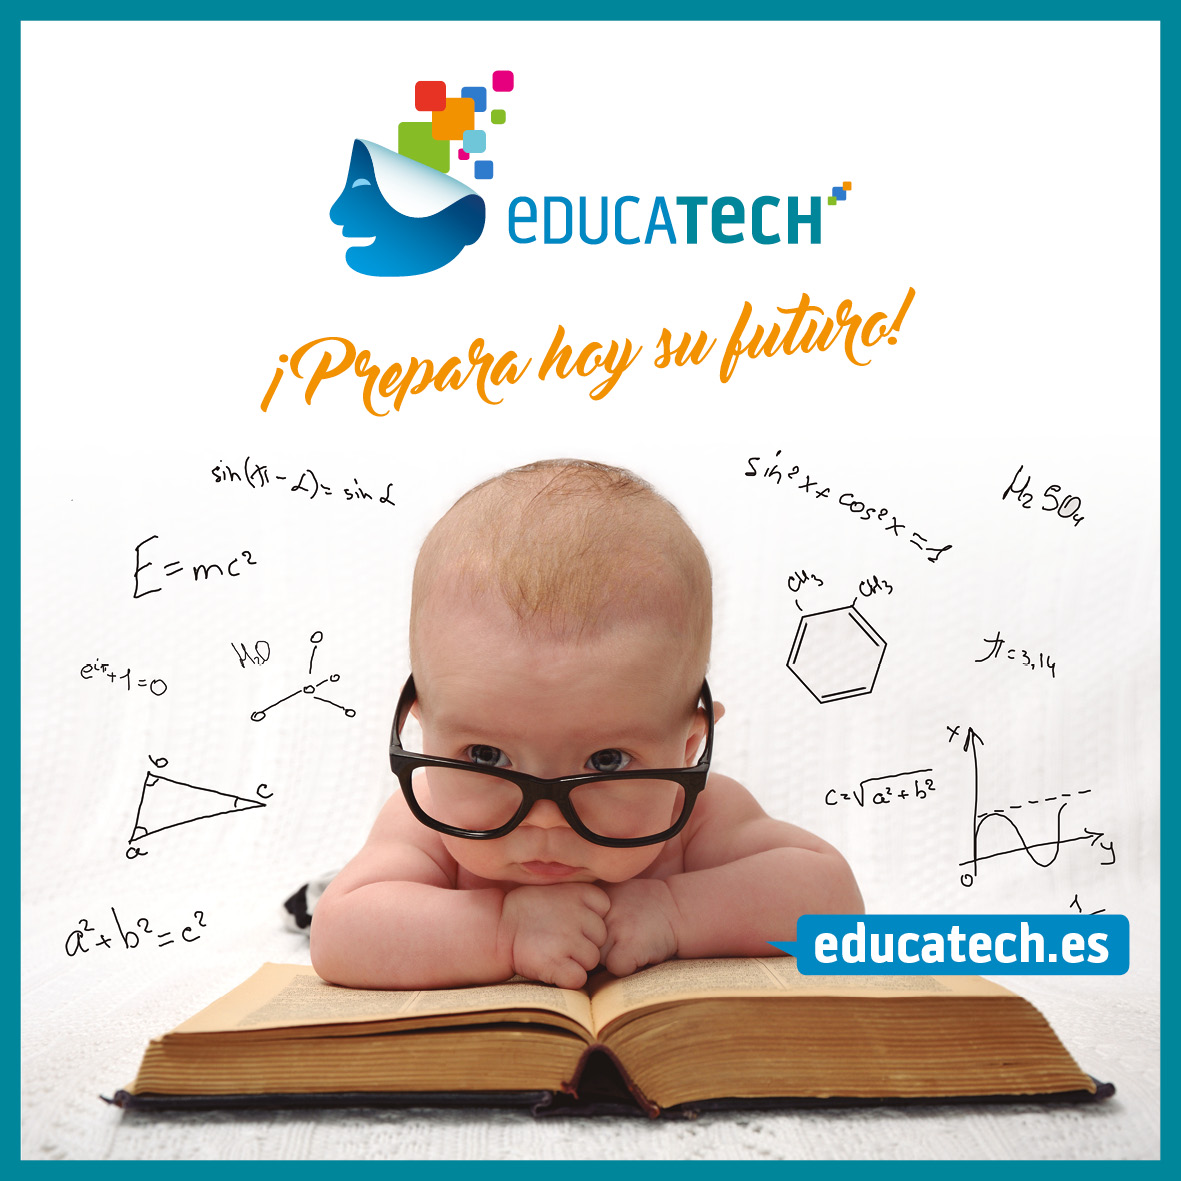 Educatech